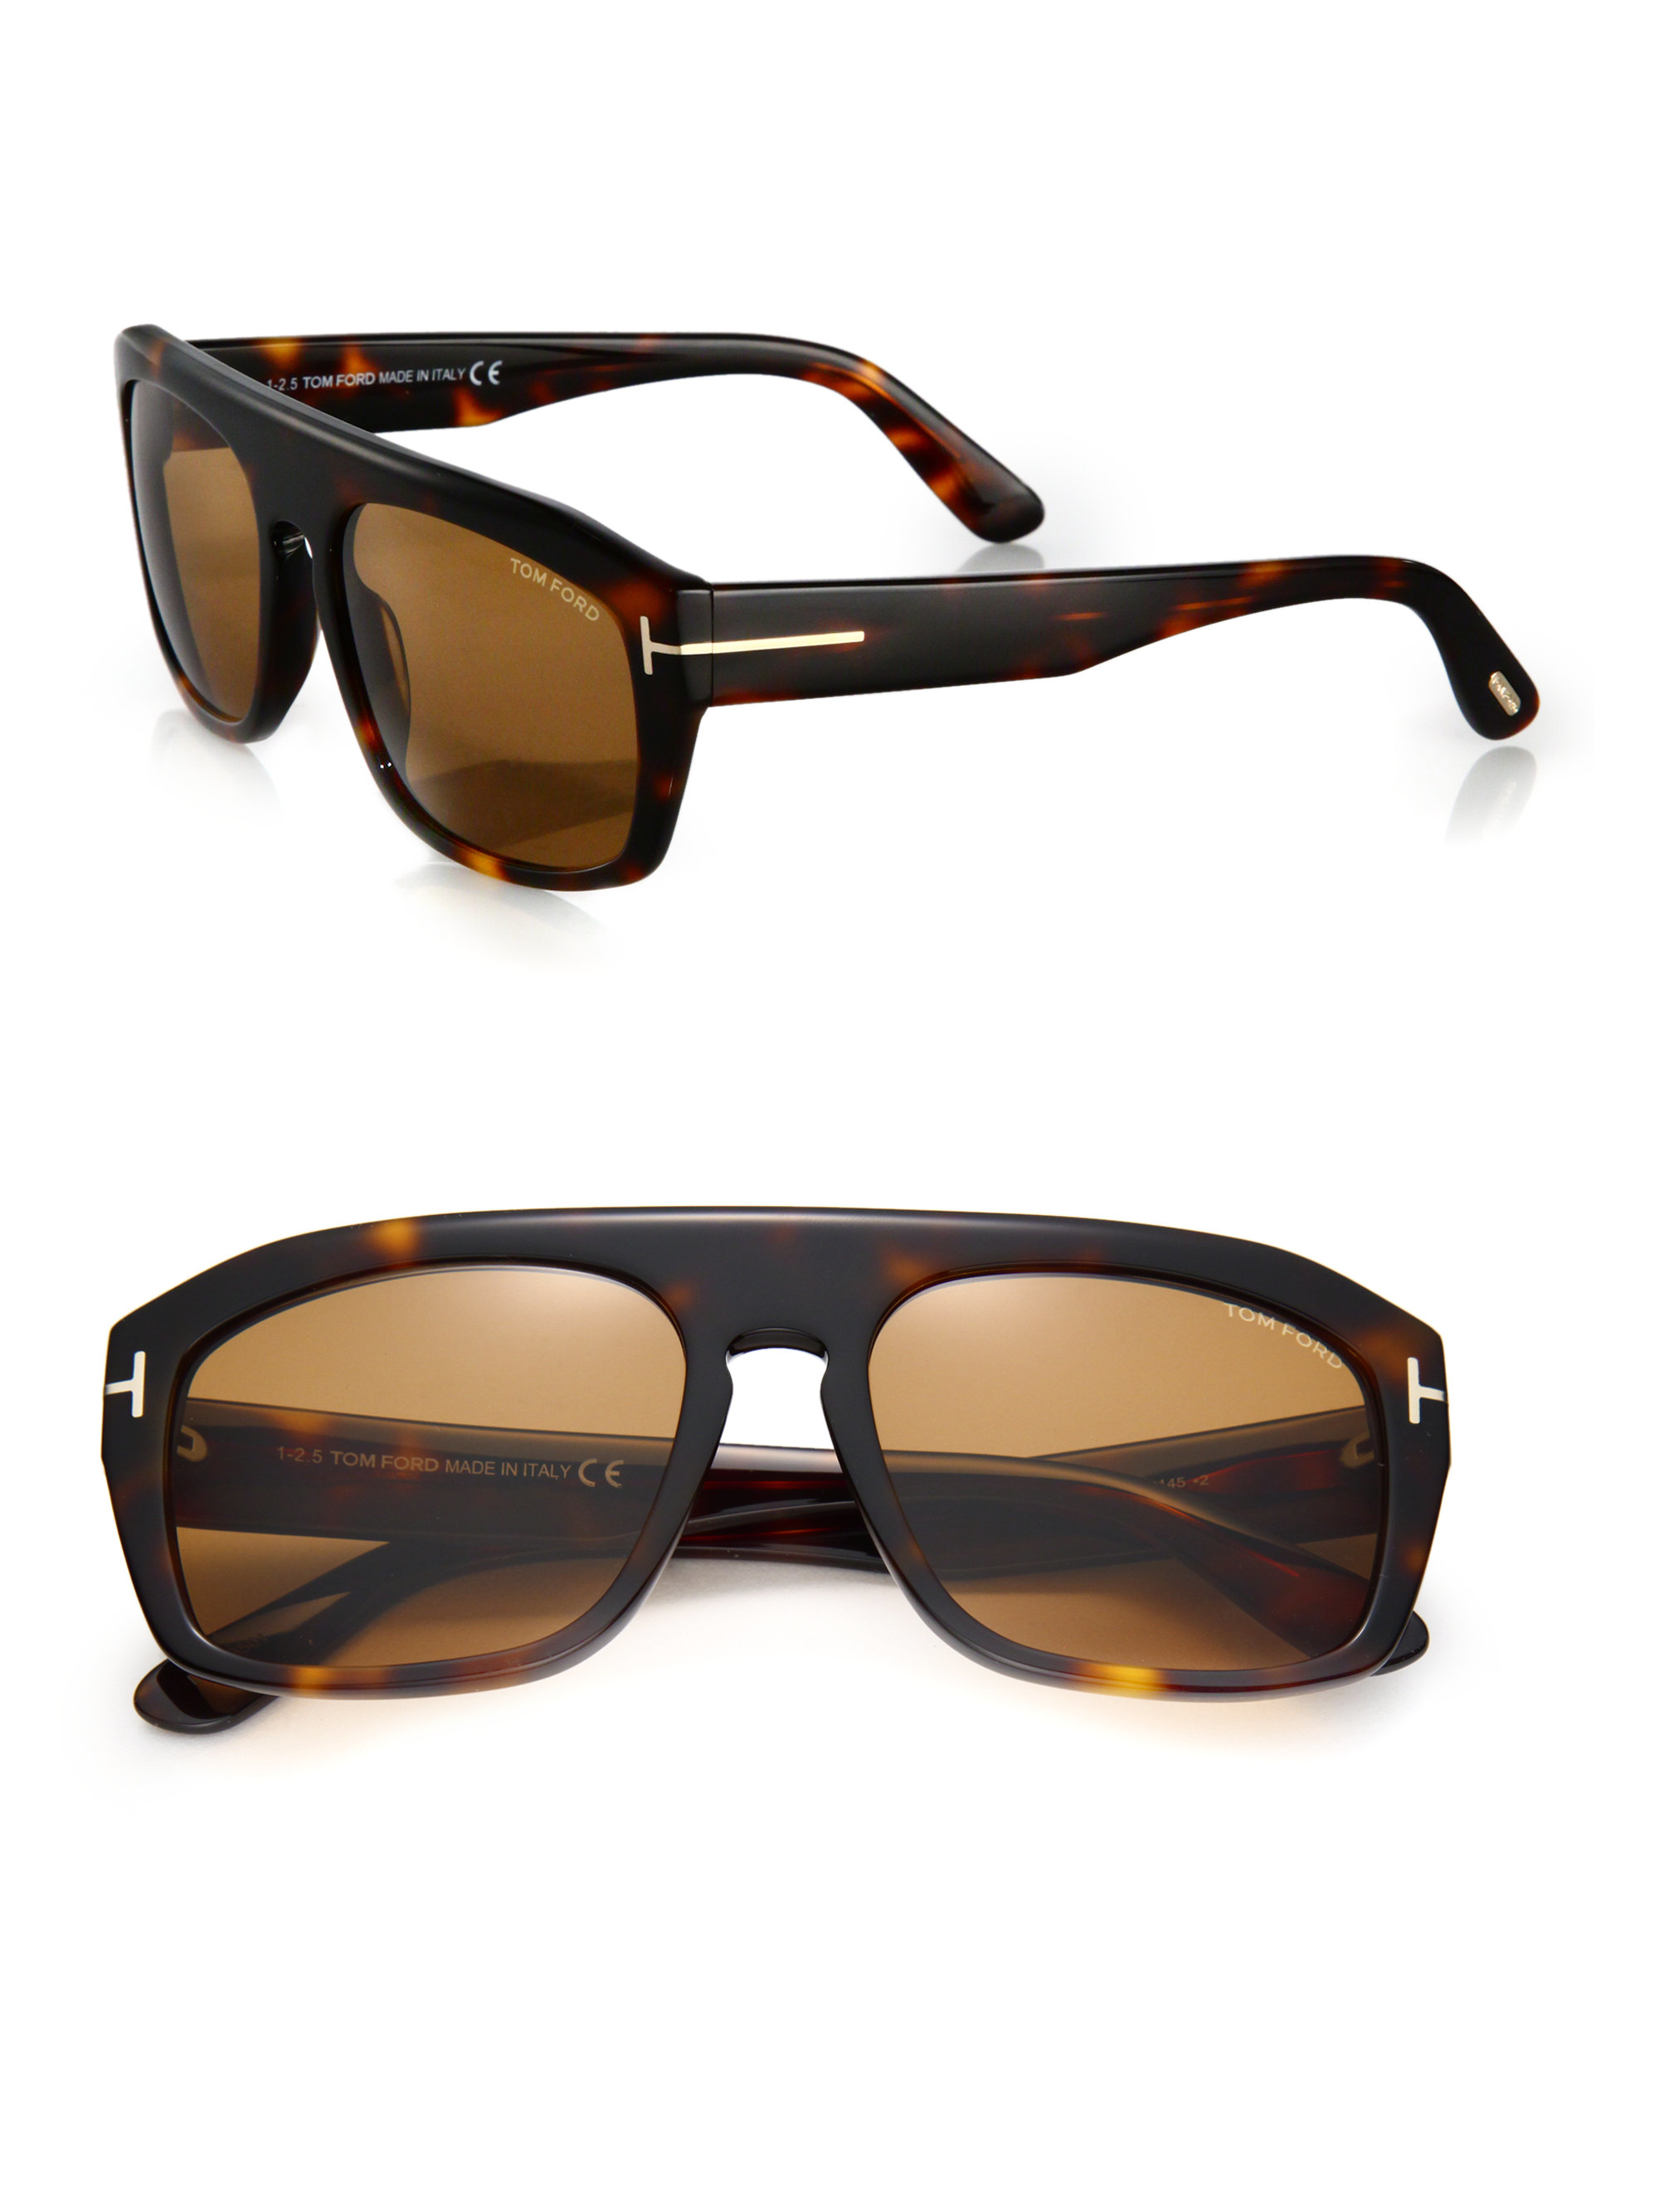 Tom Ford 58mm Square Acetate Sunglasses In Brown For Men